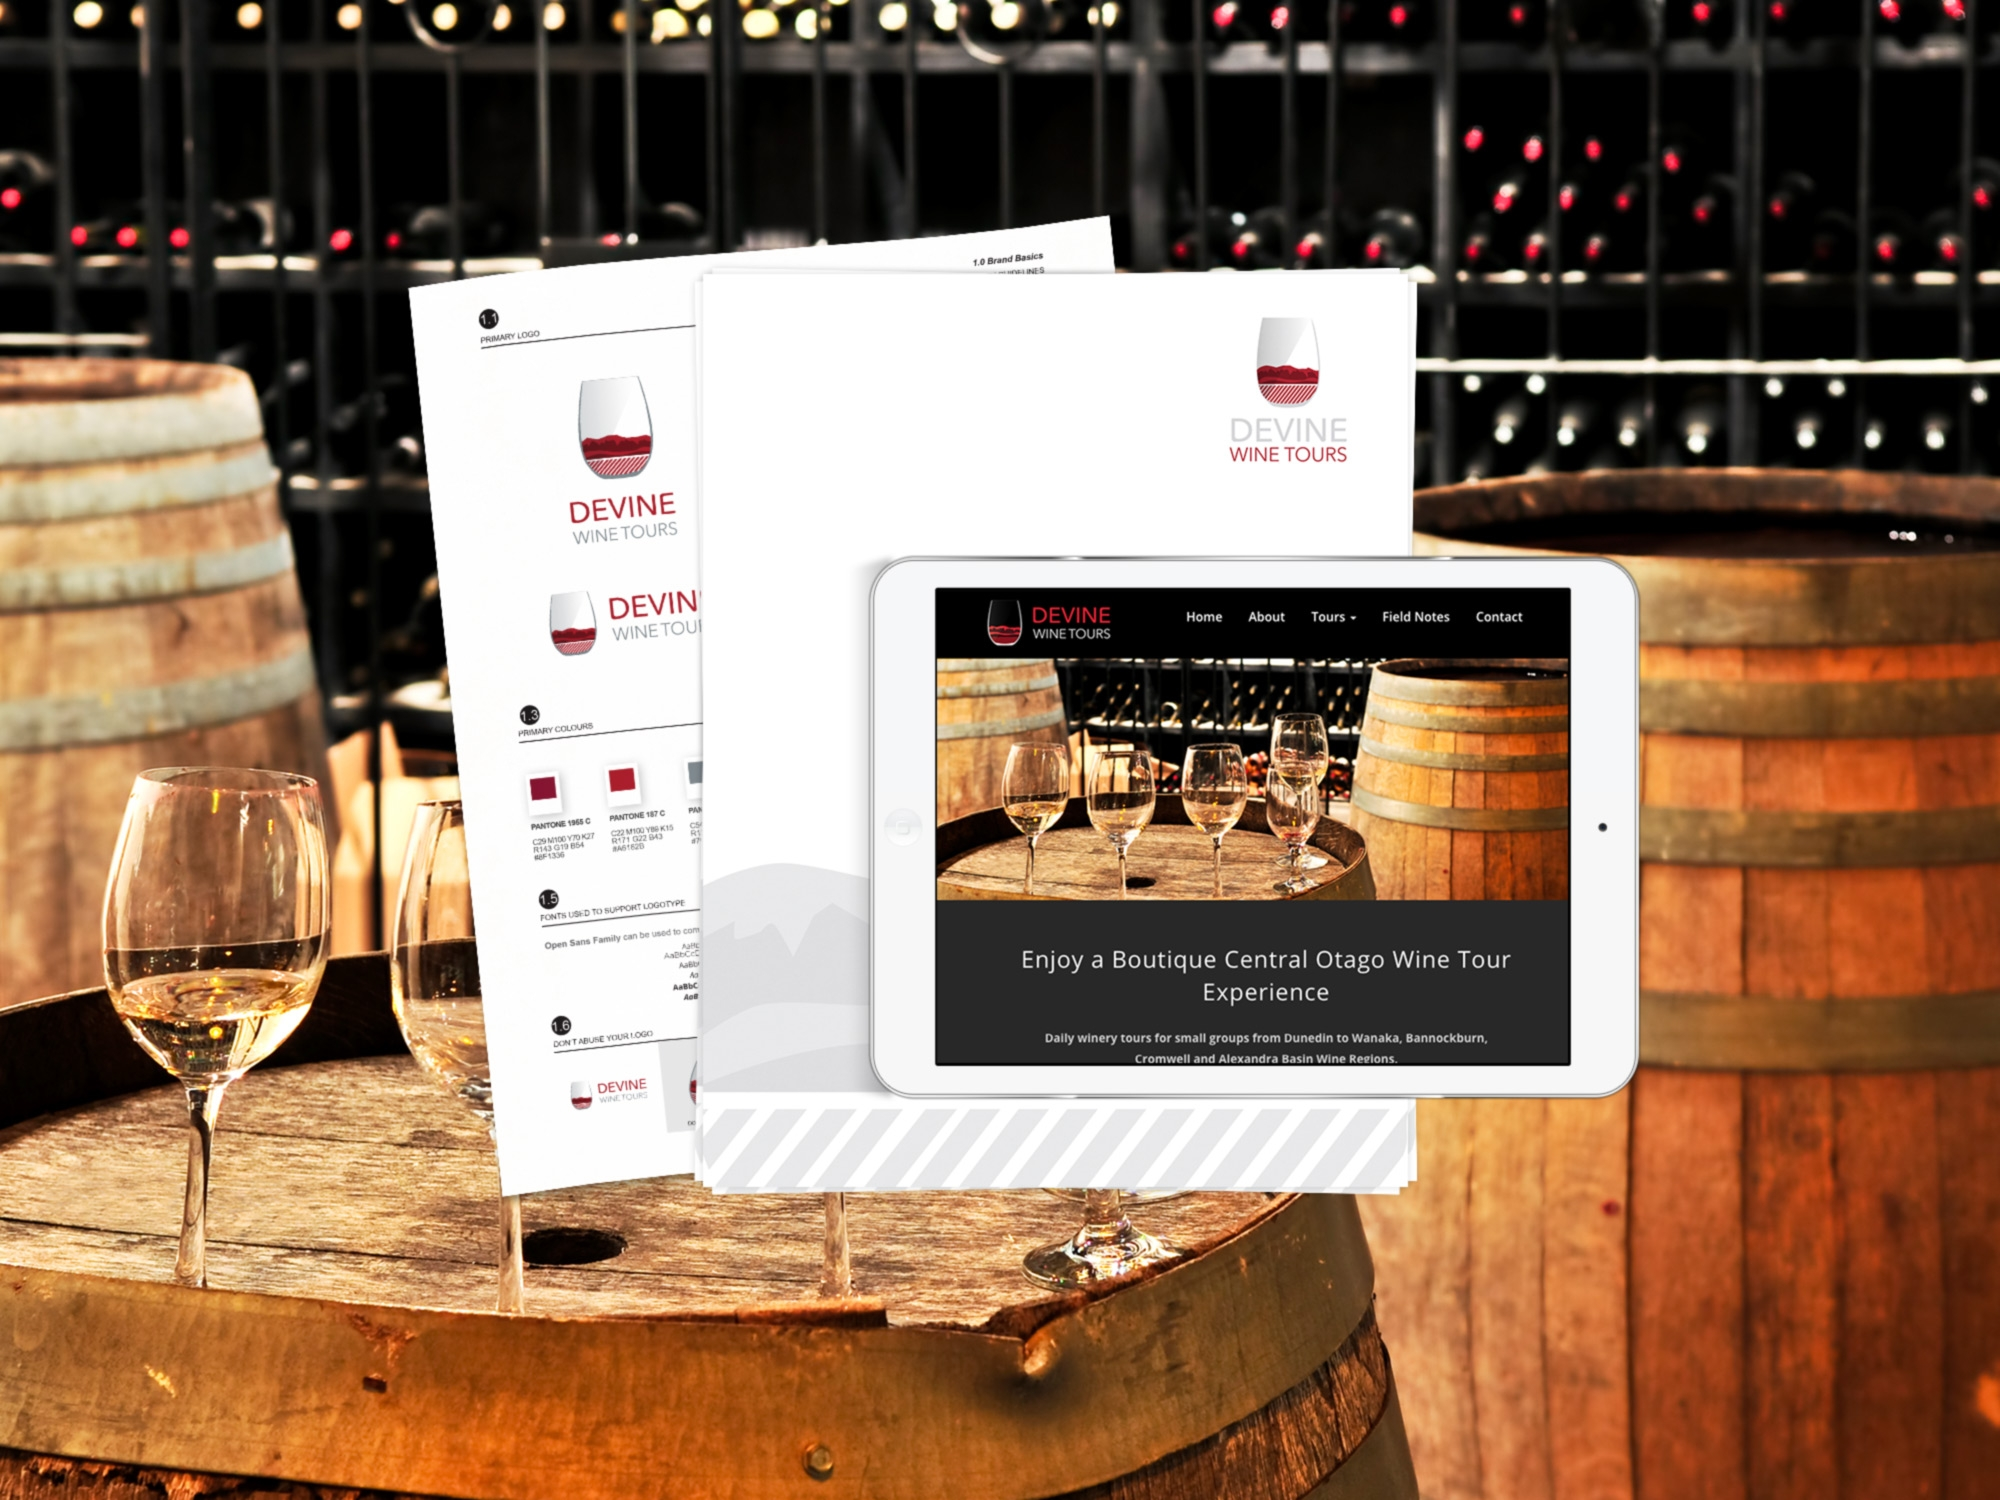 Full Service Brand and Web Project for Devine Wine Tours